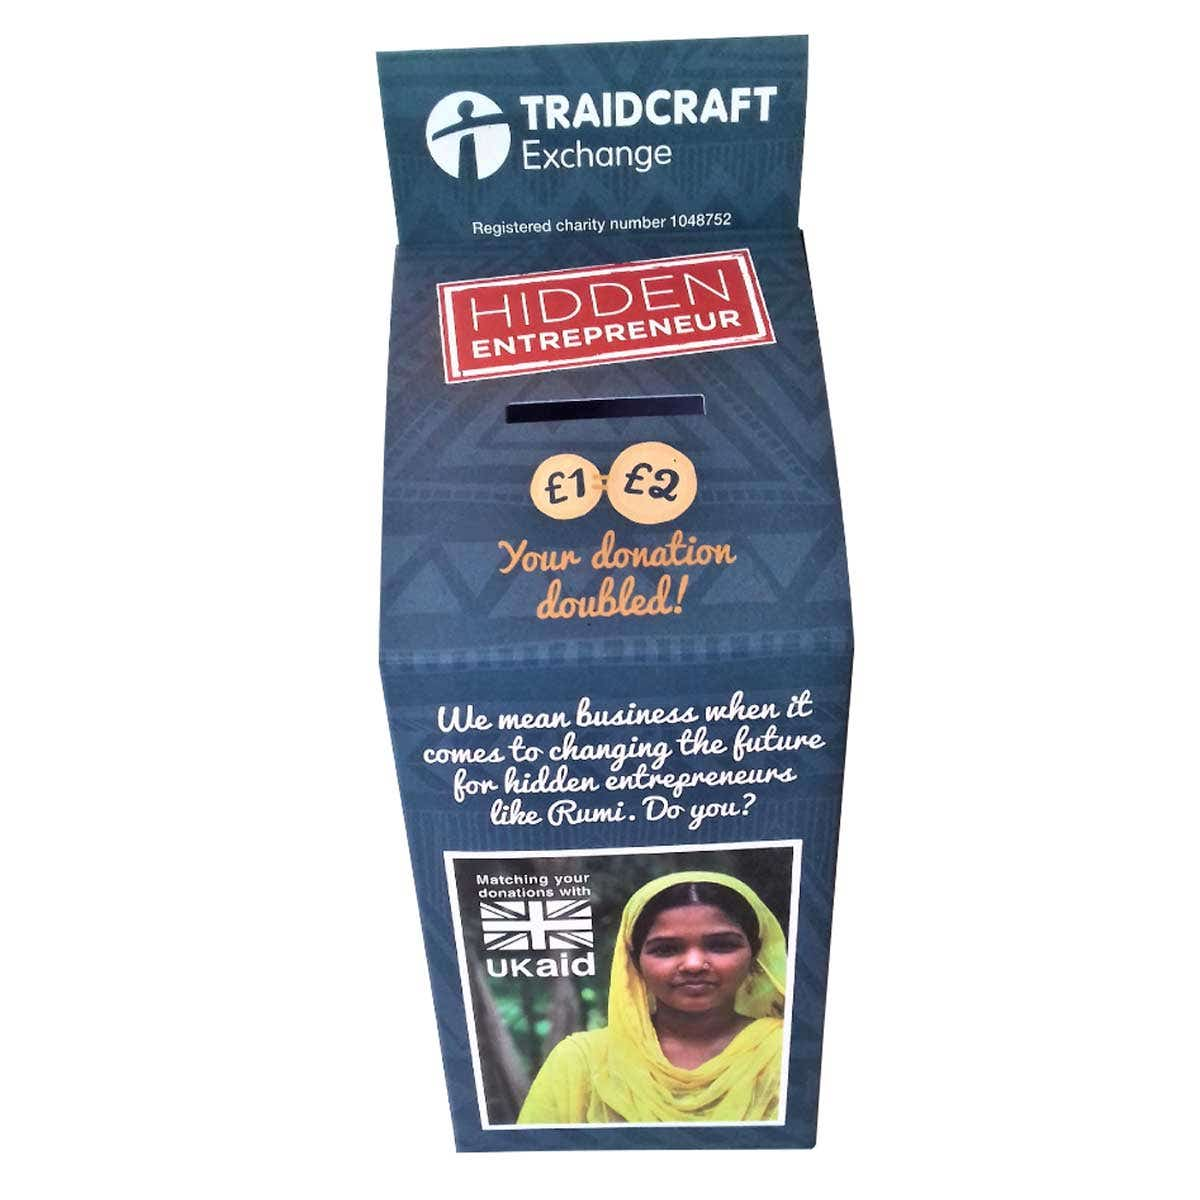 Traidcraft Collection Box